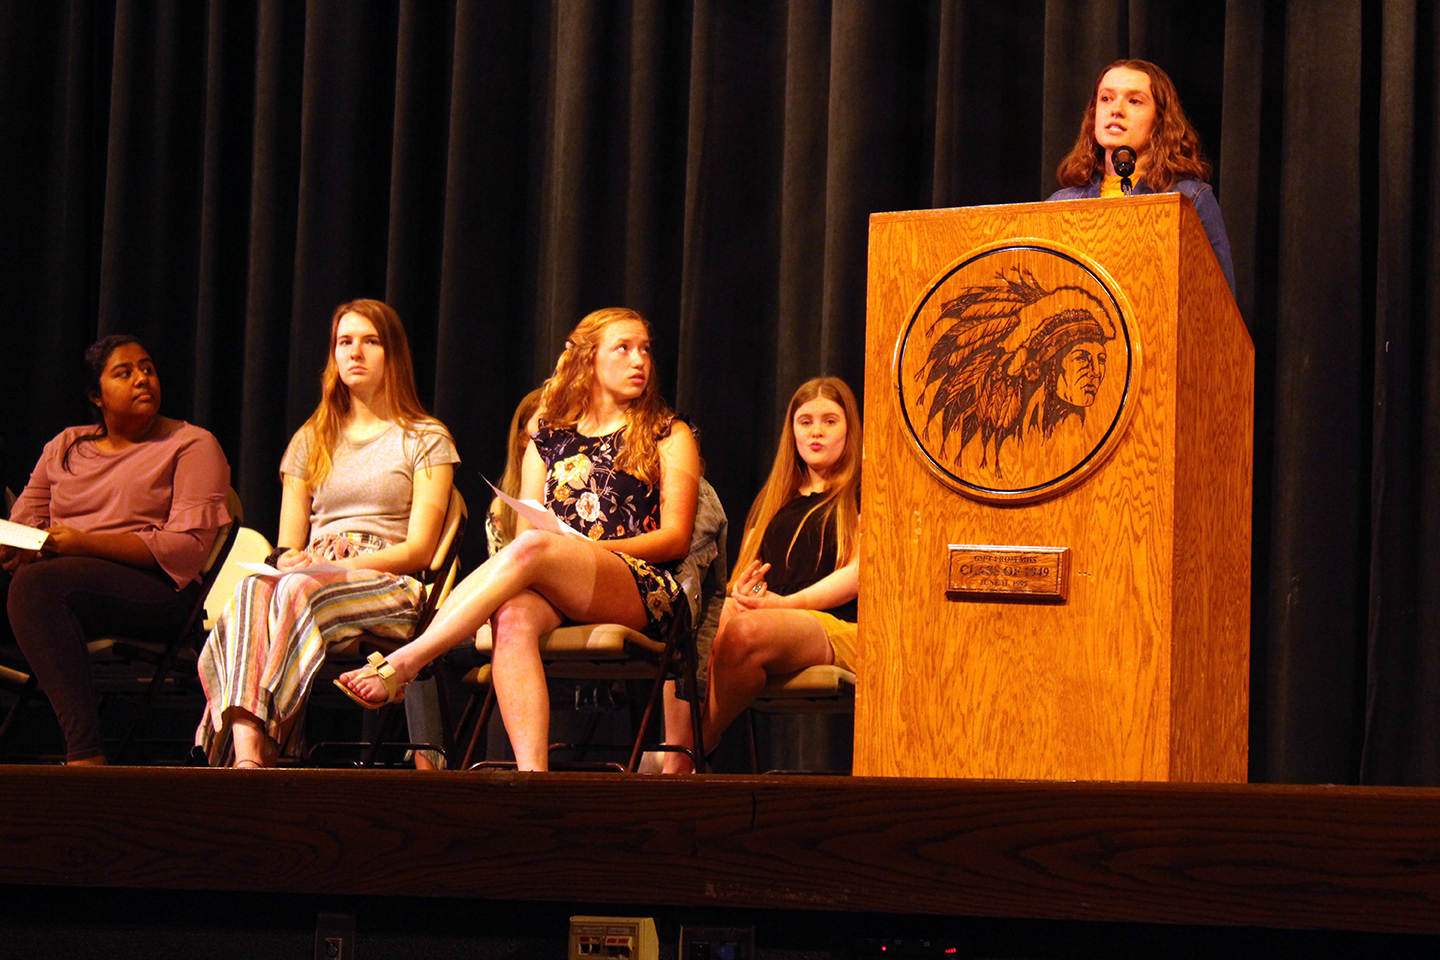 Juniors+running+for+a+position+in+StuCo.++Macy+Hendricks+looks+to+Elizabeth+Chapman+as+she+gives+her+speech.+